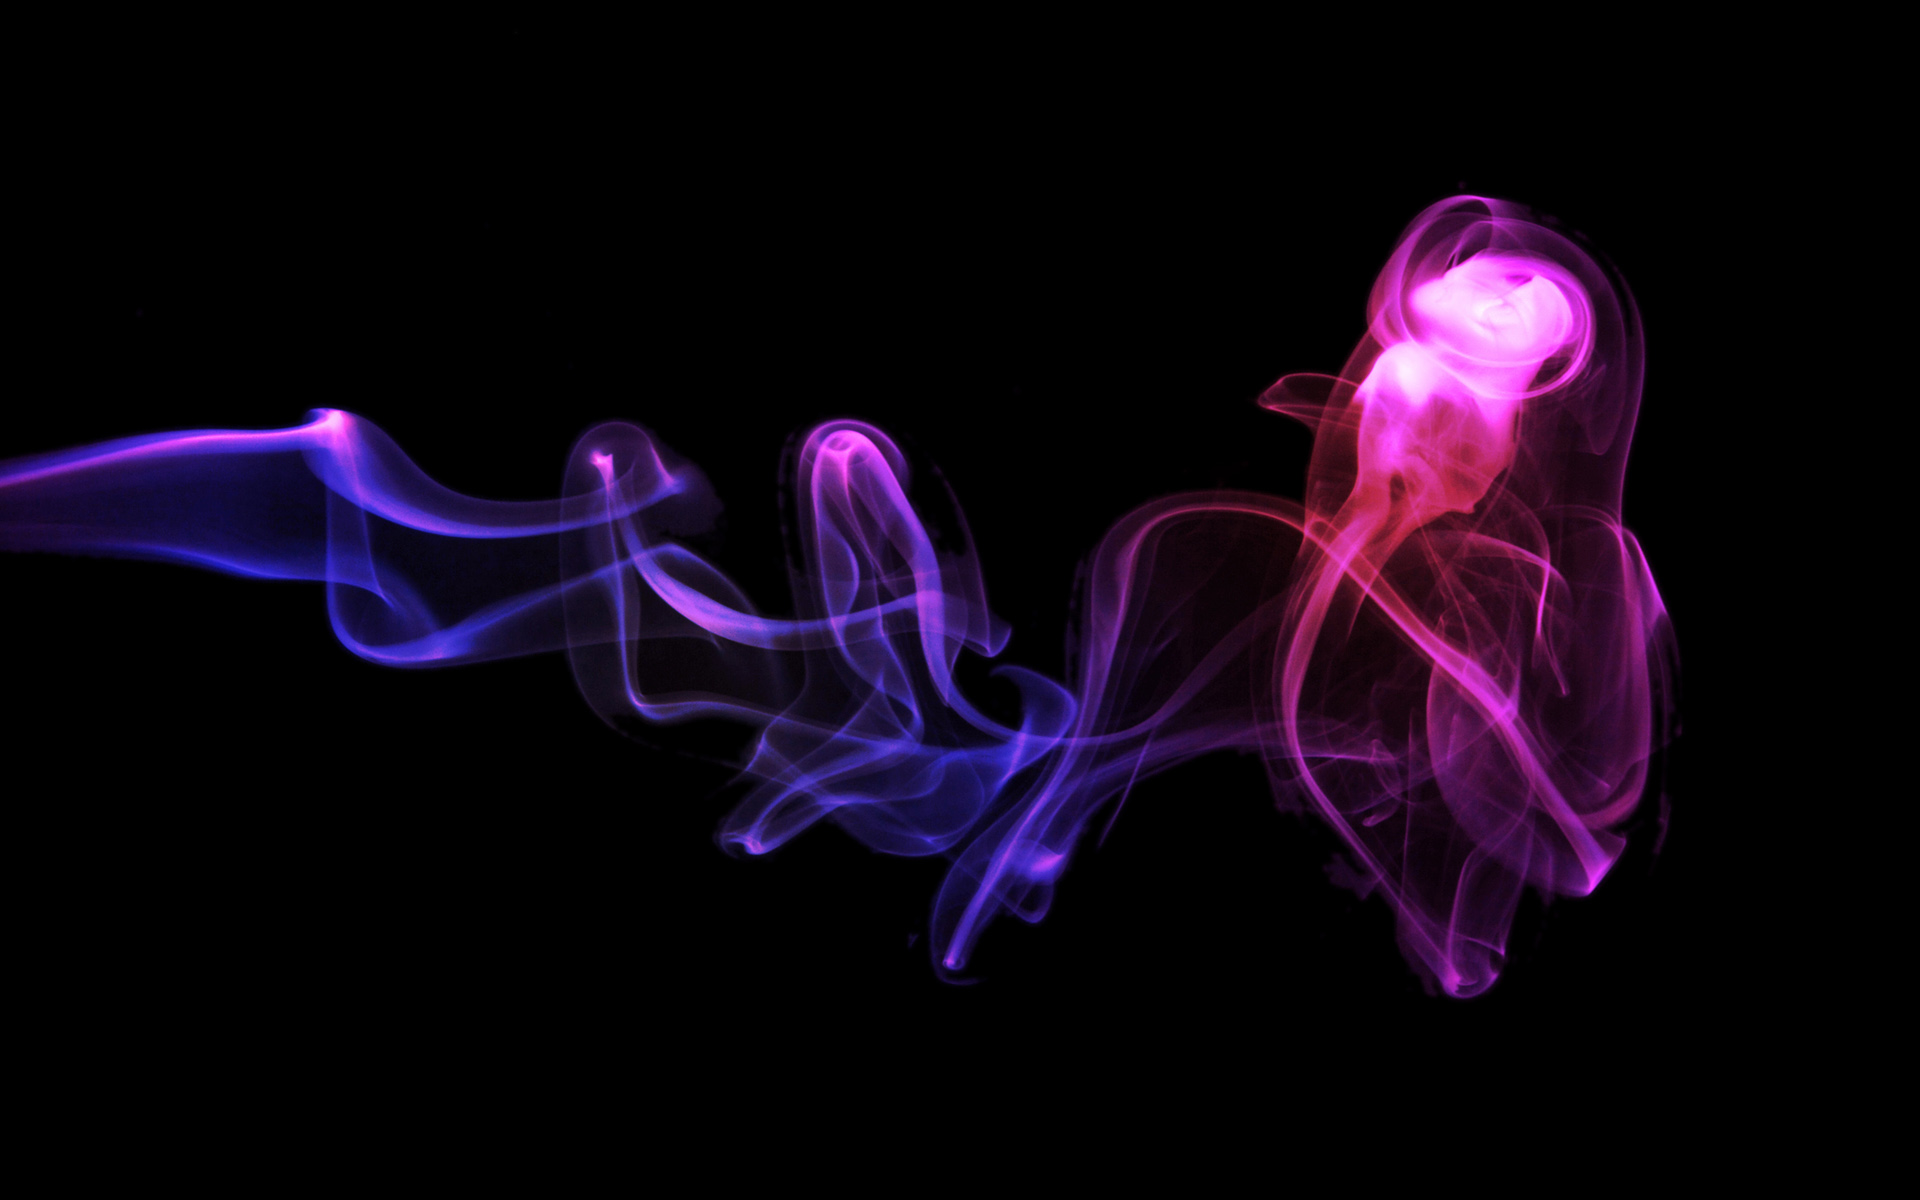 3d Patriots Wallpaper Purple Smoke Wallpapers Purple Smoke Stock Photos